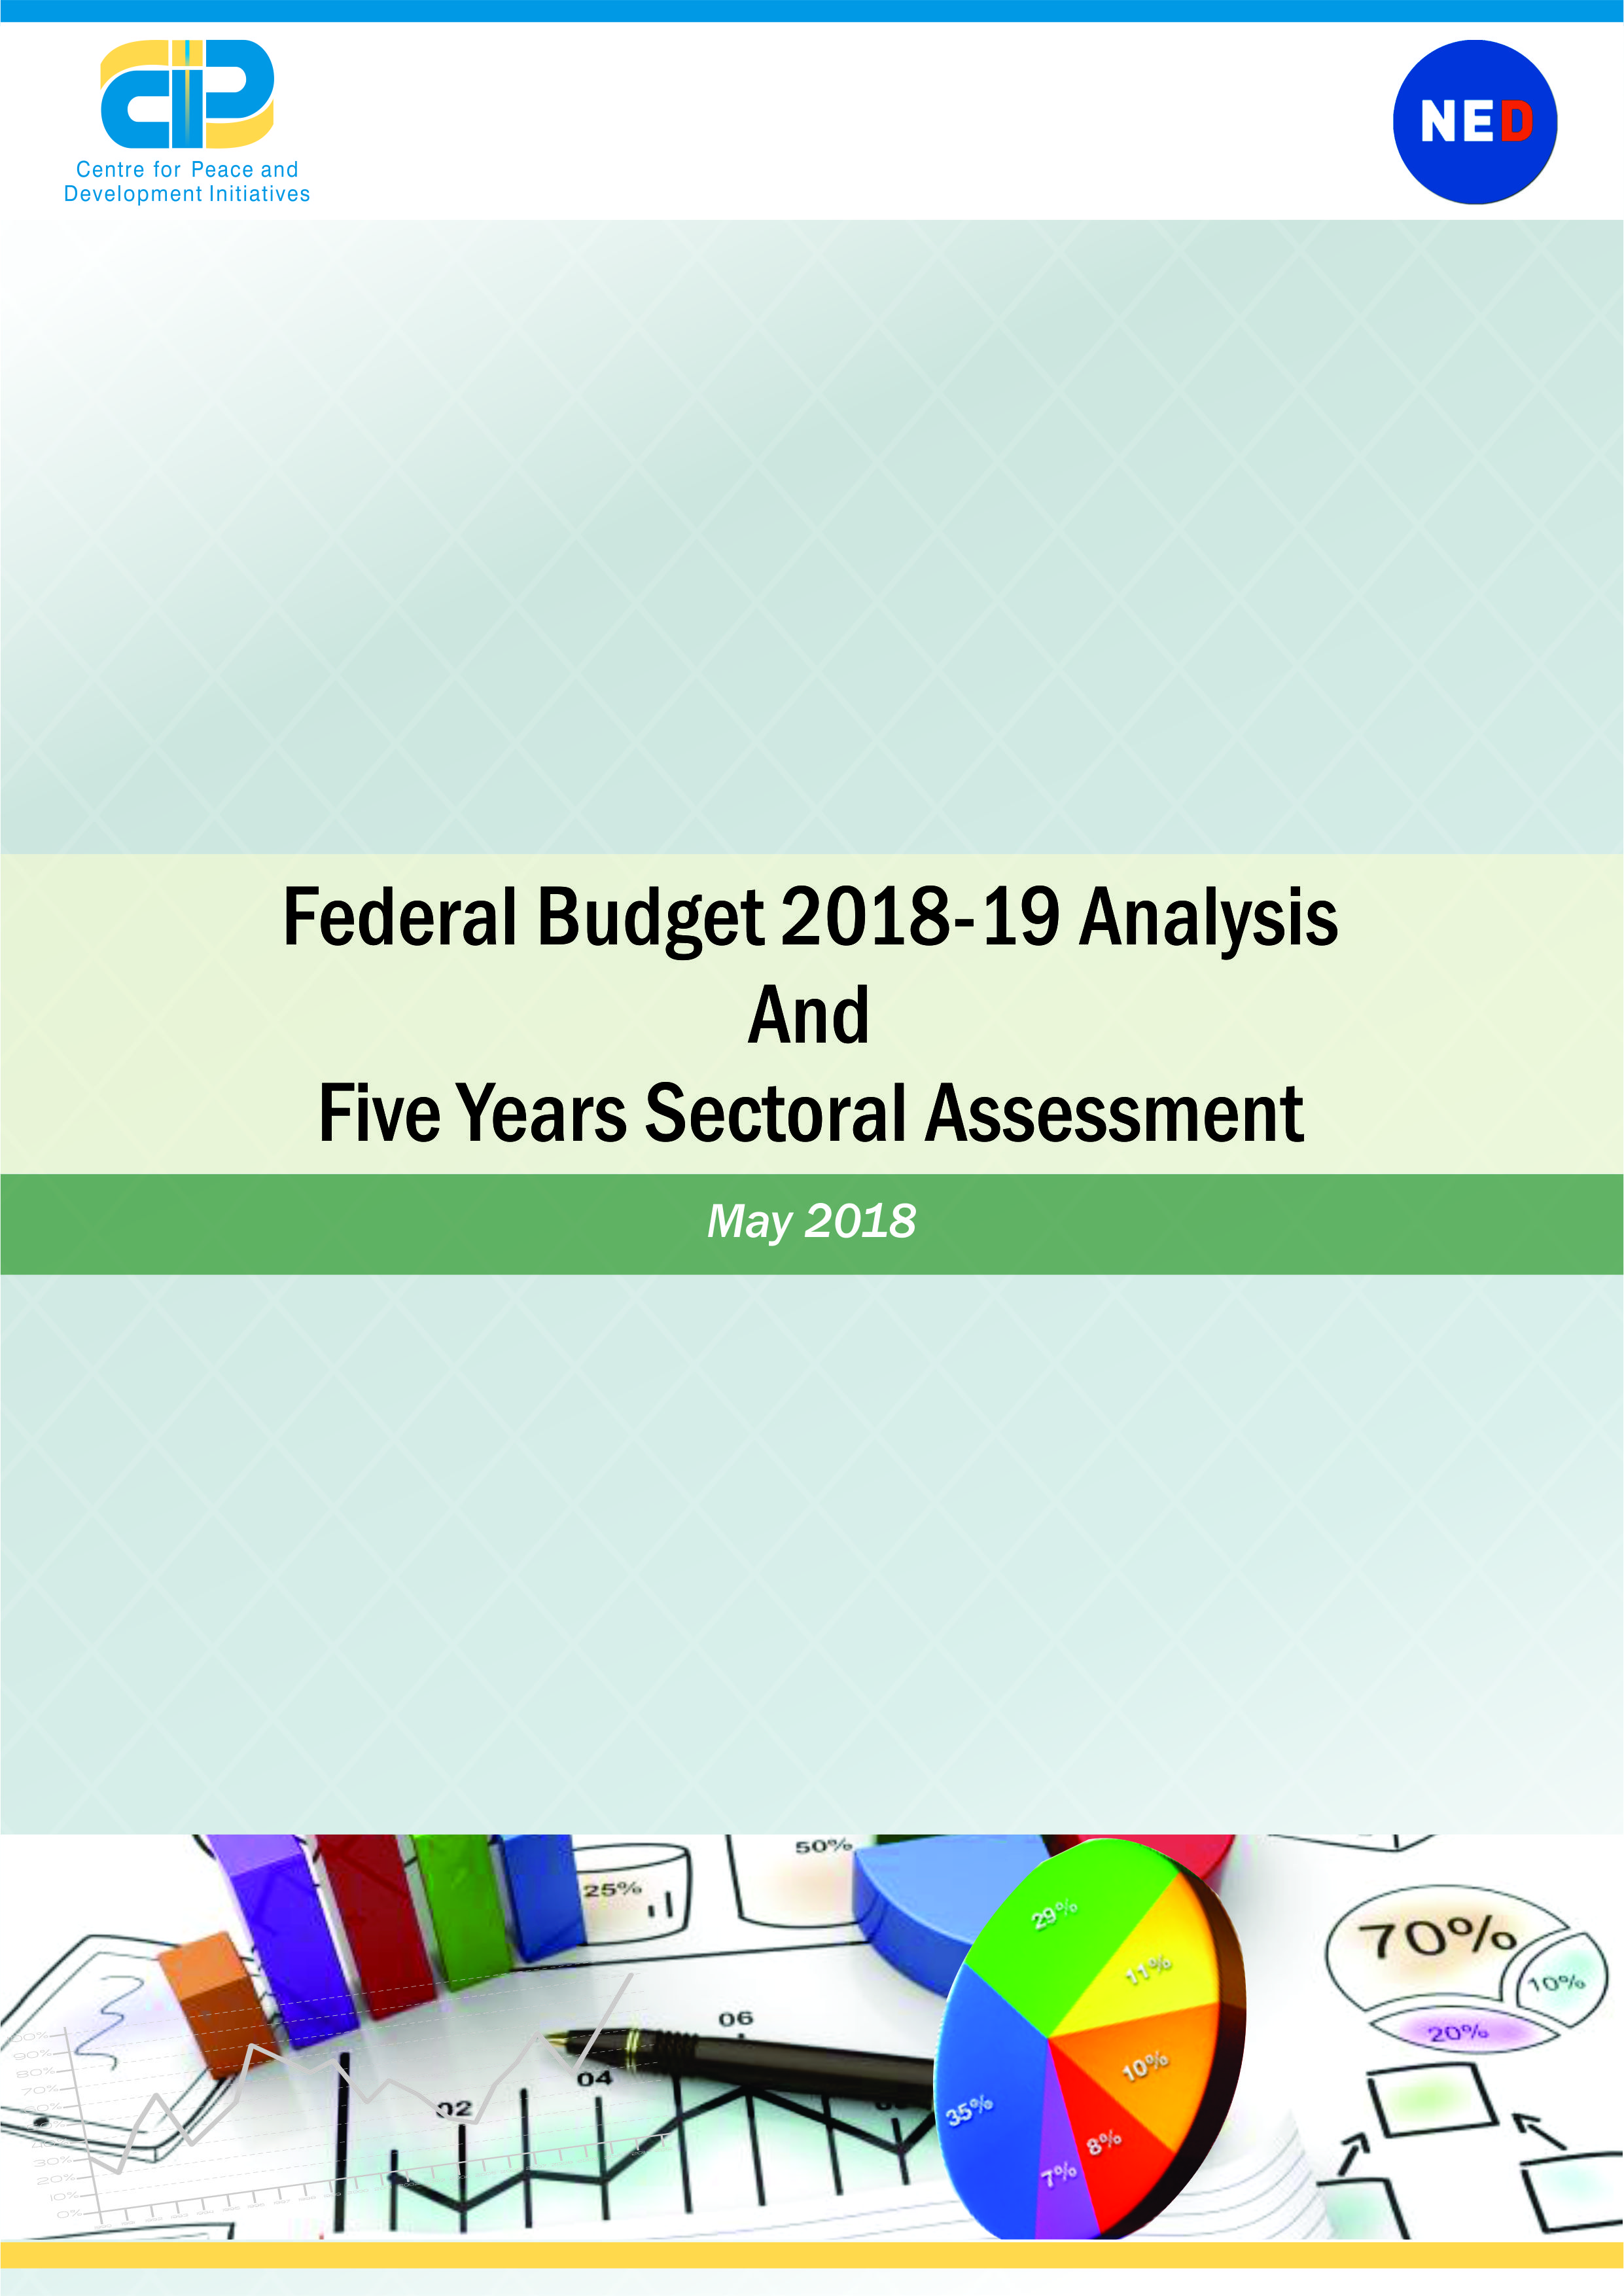 Federal Budget 2018-19 Analysis and Five Years Sectoral Assessment